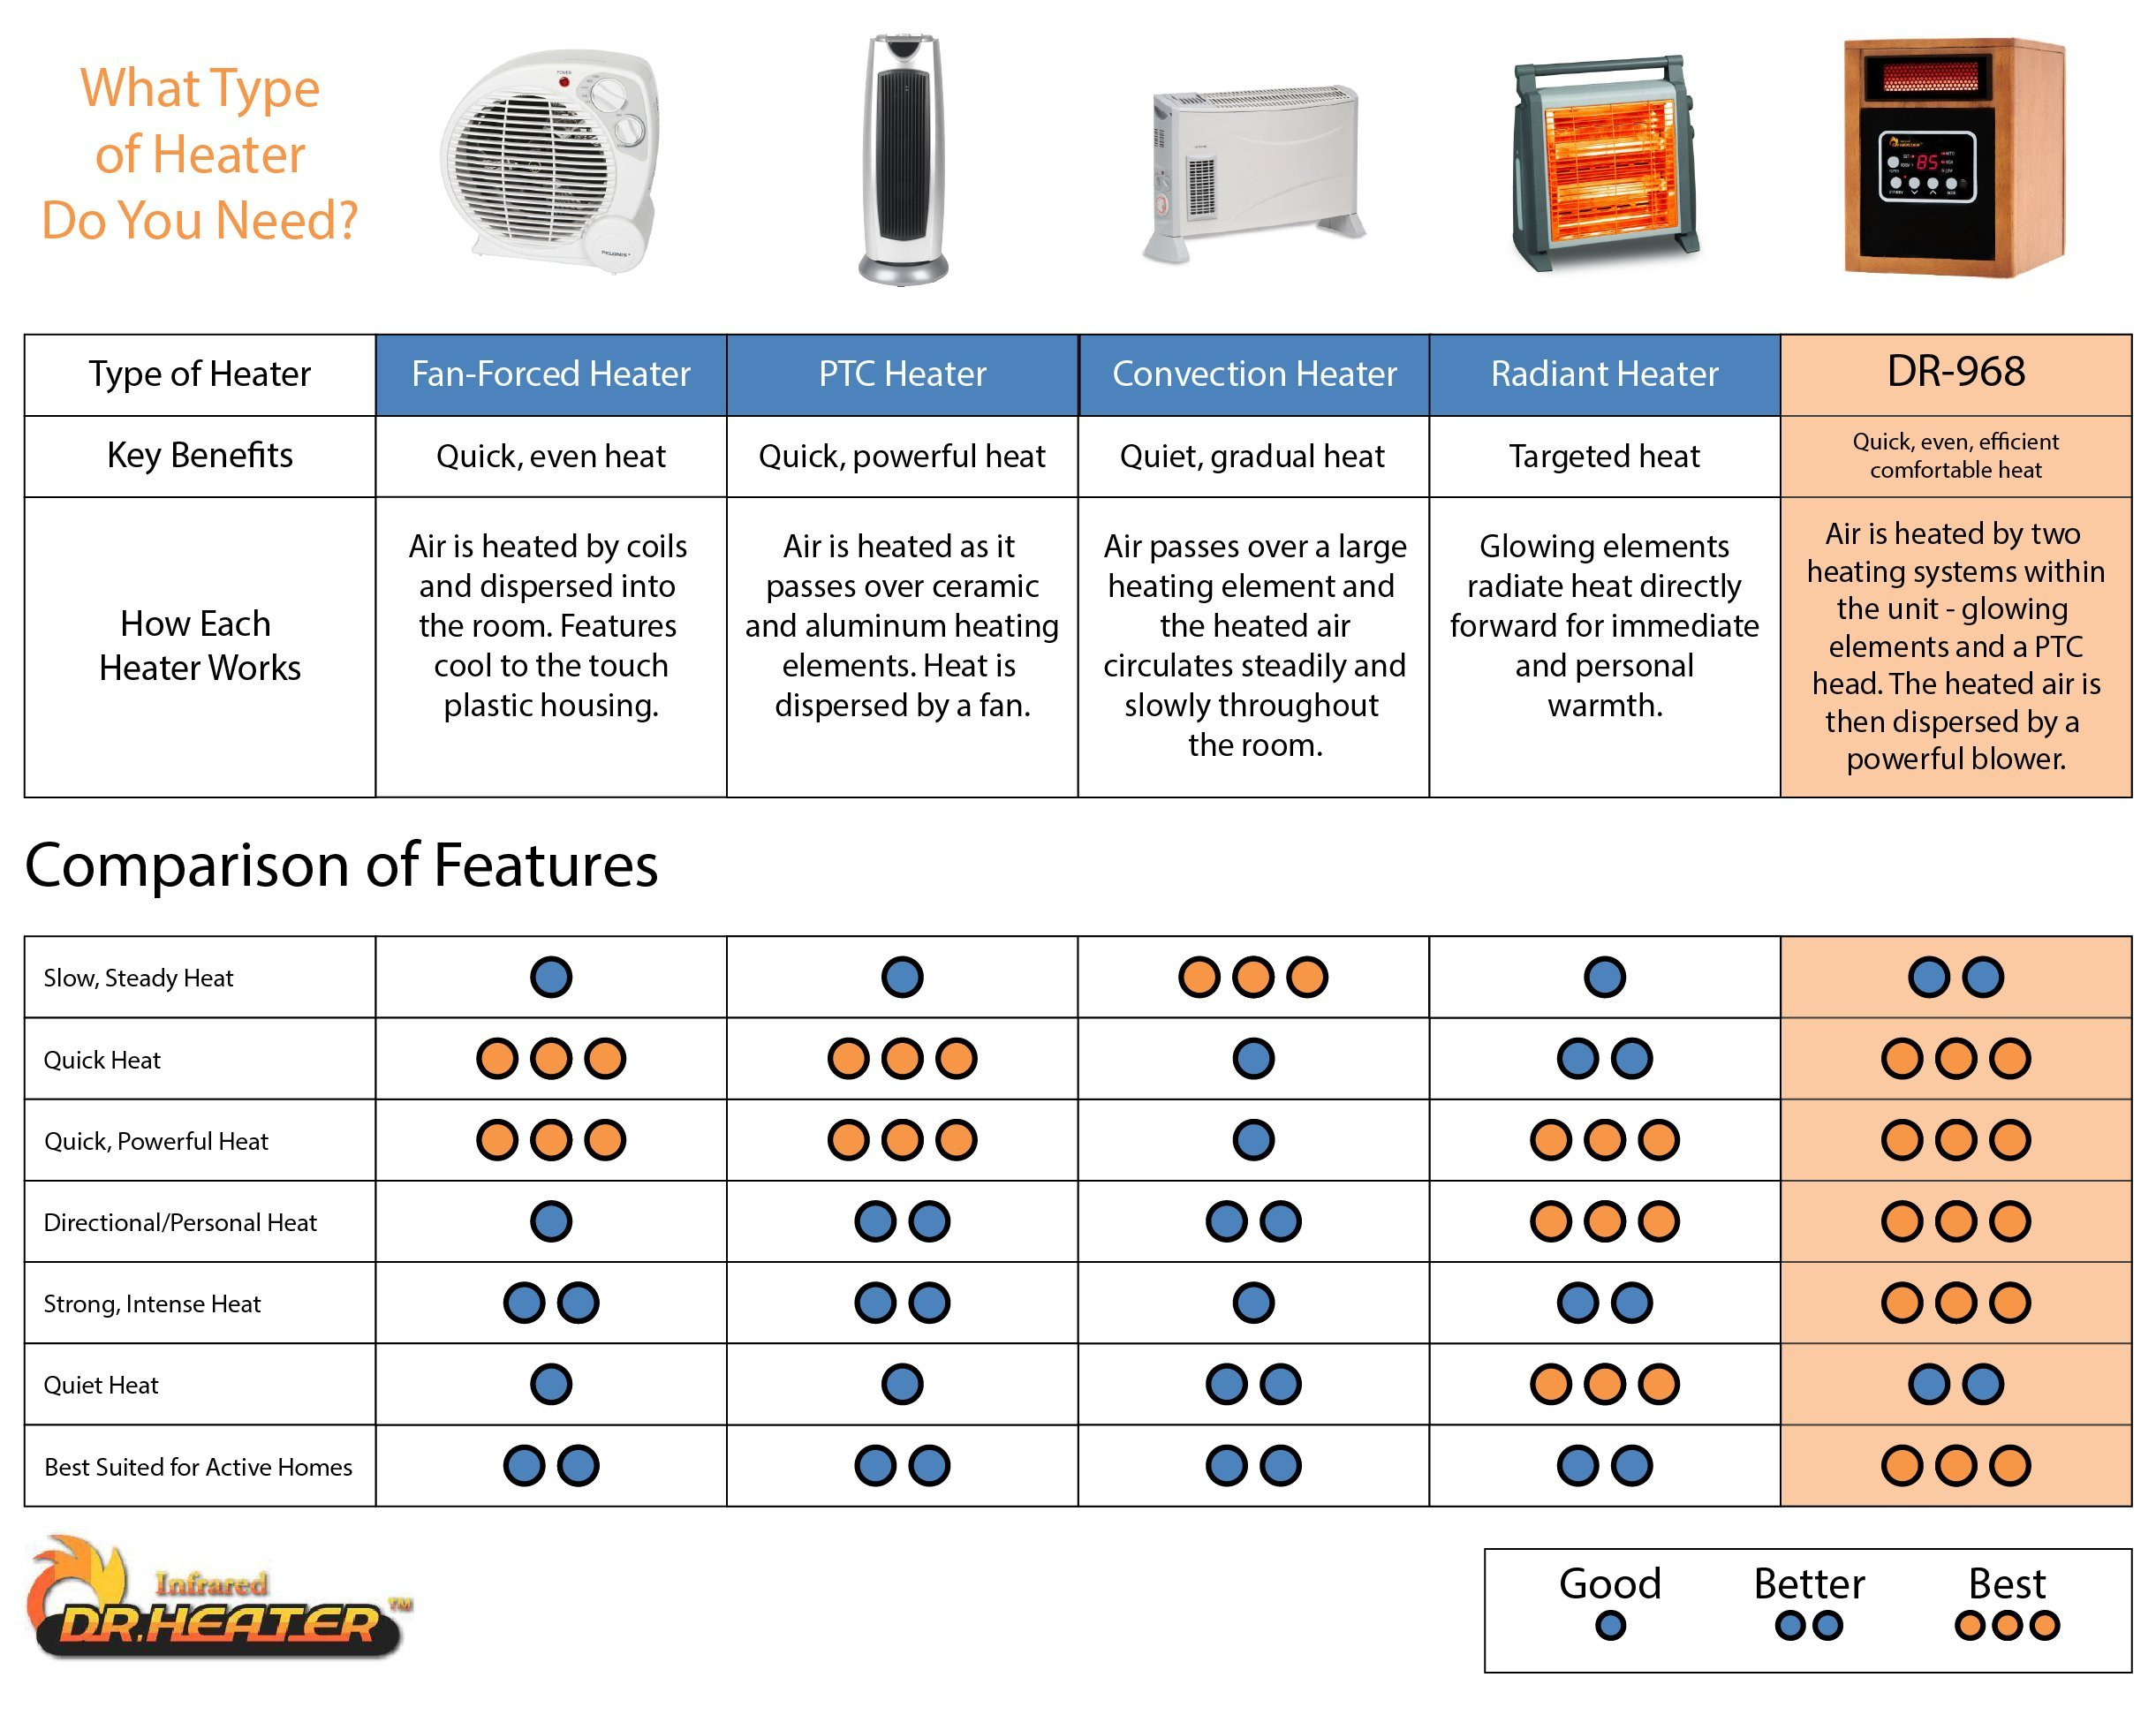 Dr Infrared Heater Portable Space Heater, 1500-Watt by Dr Infrared Heater (Image #7)